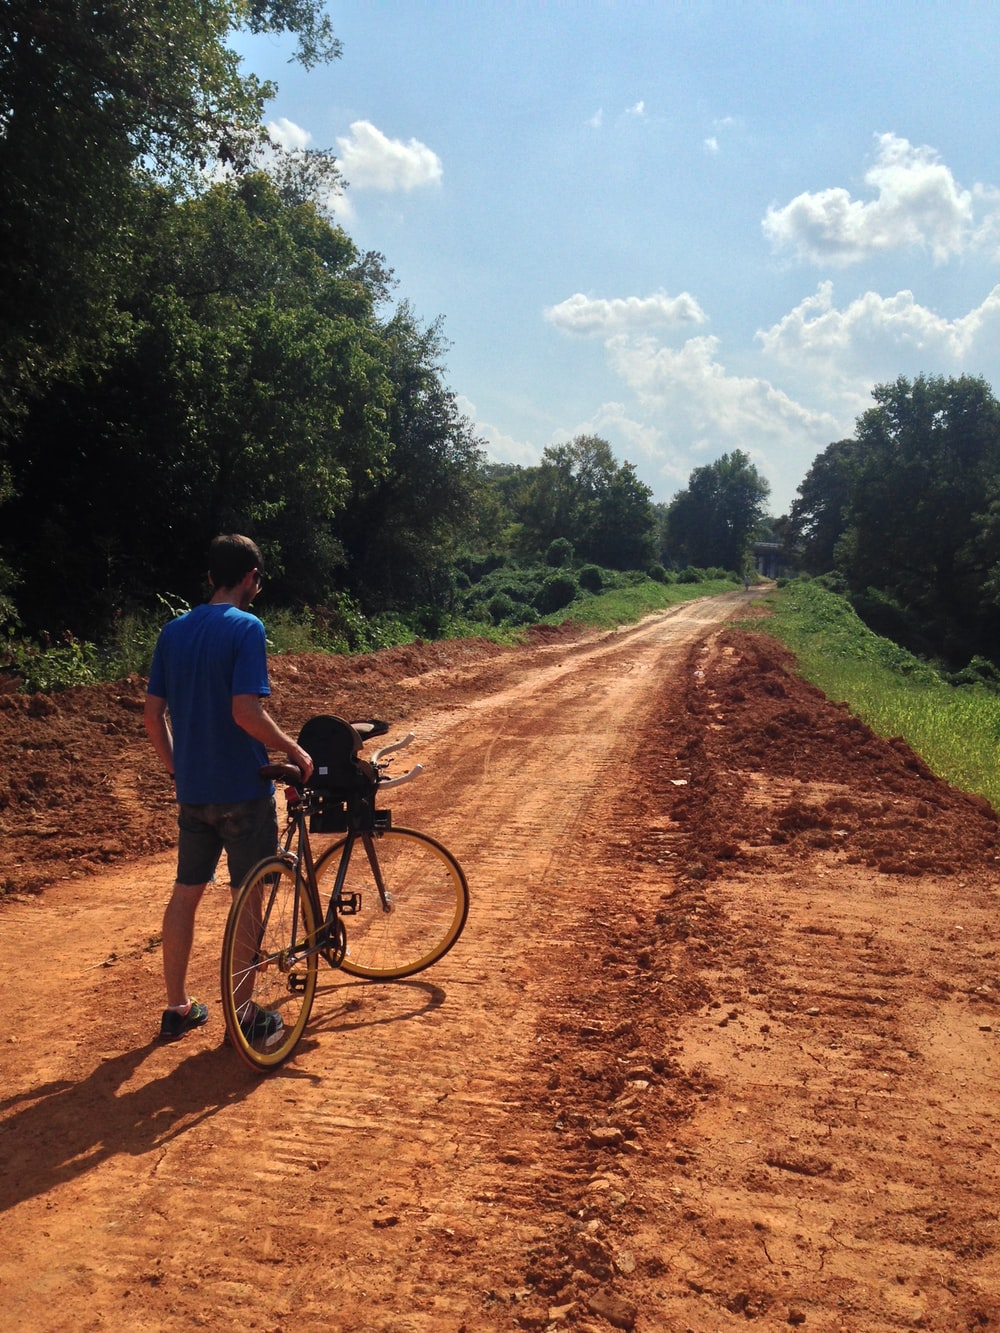 man standing and holding road bike on dirt road near trees